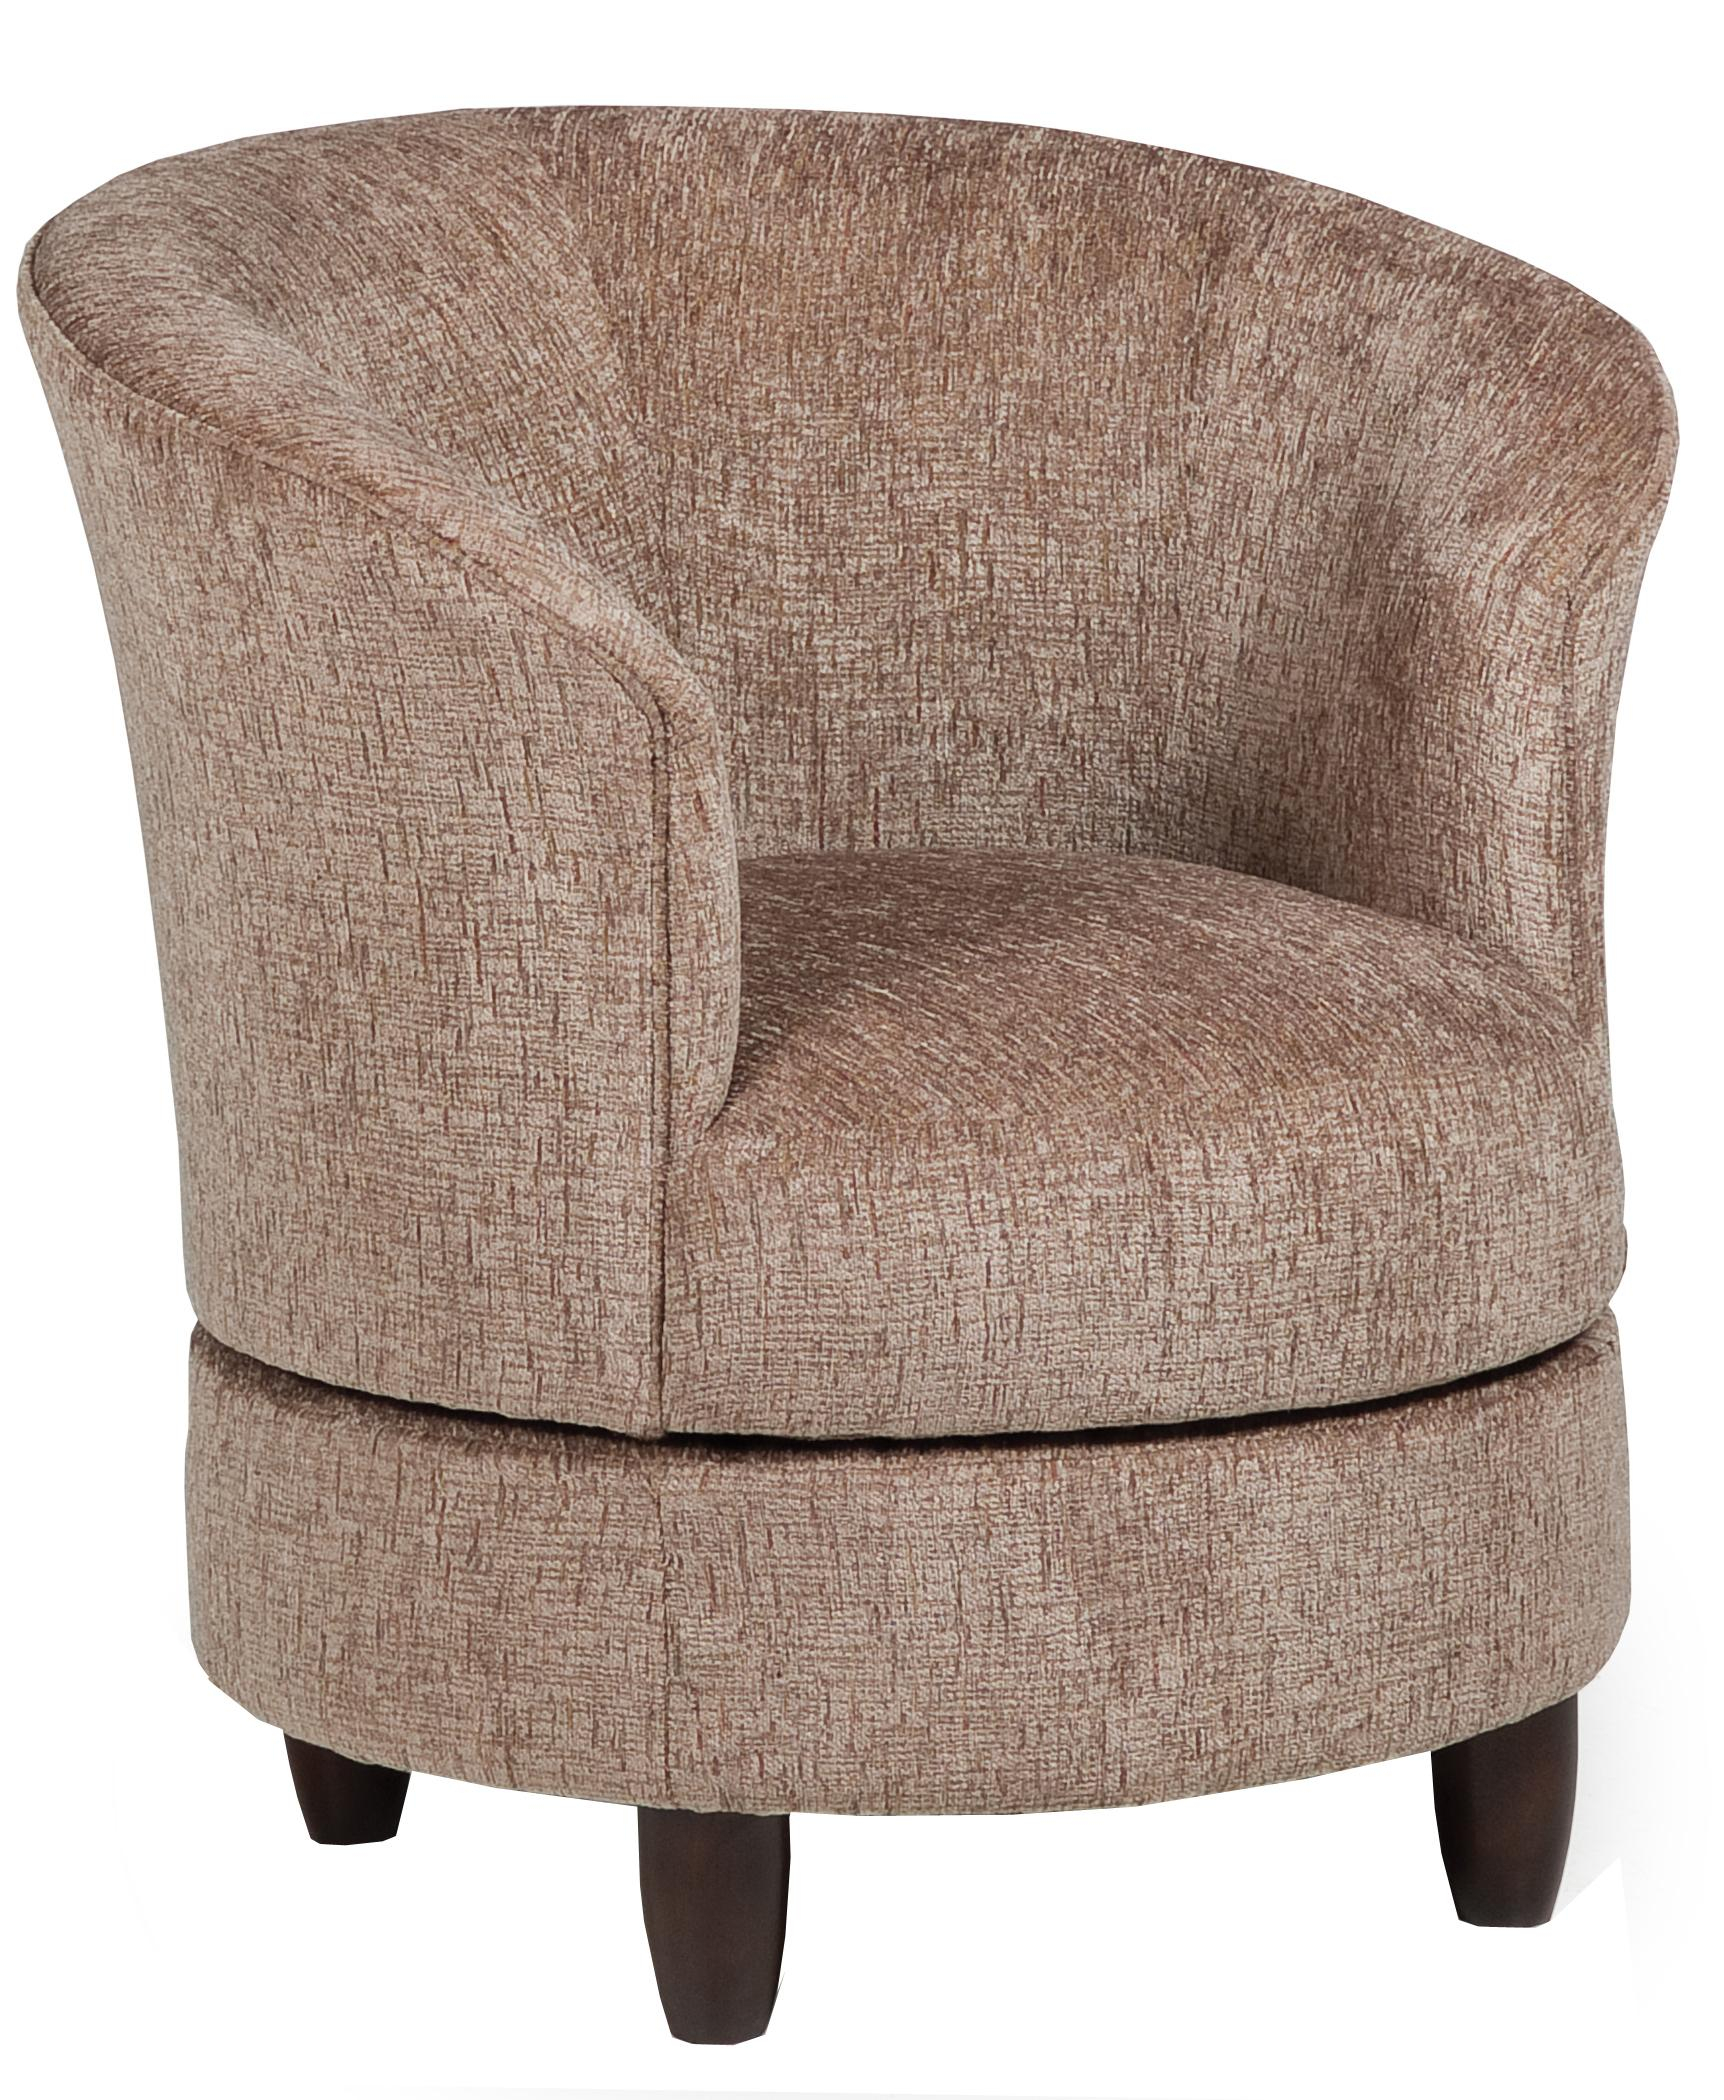 Best Home Furnishings Accent Chairs Swivel Barrel Chair | Rune's Inside Umber Grey Swivel Accent Chairs (Image 6 of 20)